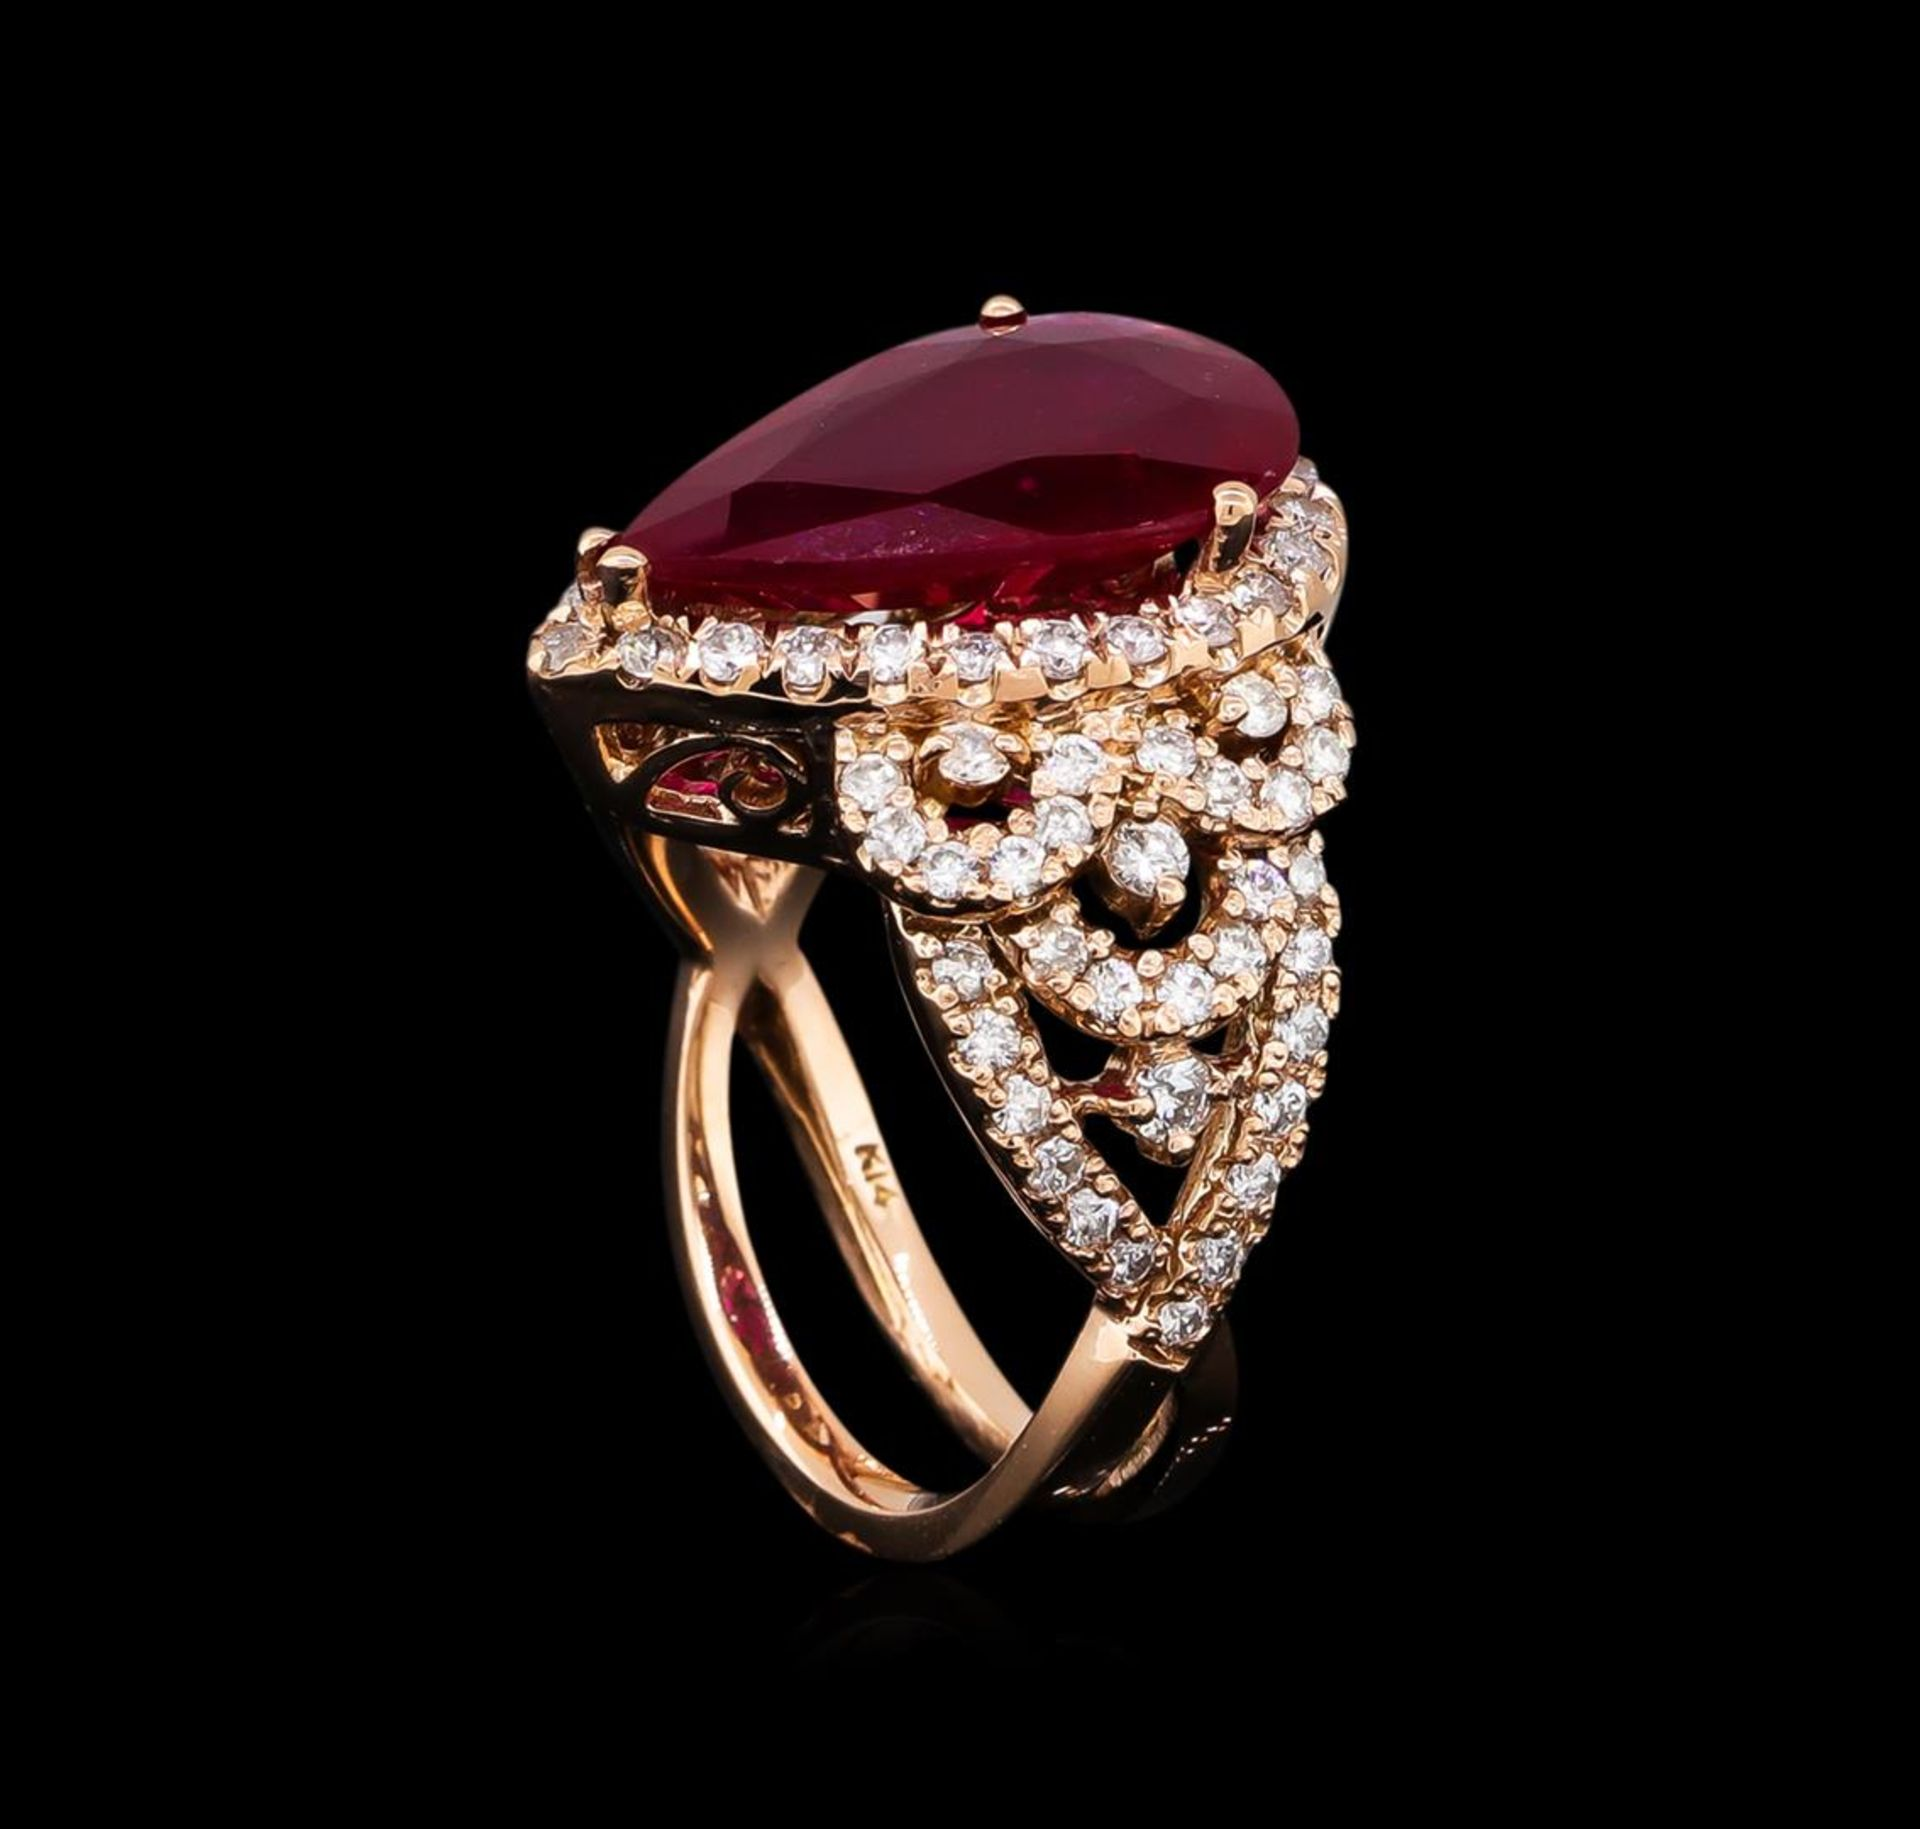 5.35ct Ruby and Diamond Ring - 14KT Rose Gold - Image 4 of 6